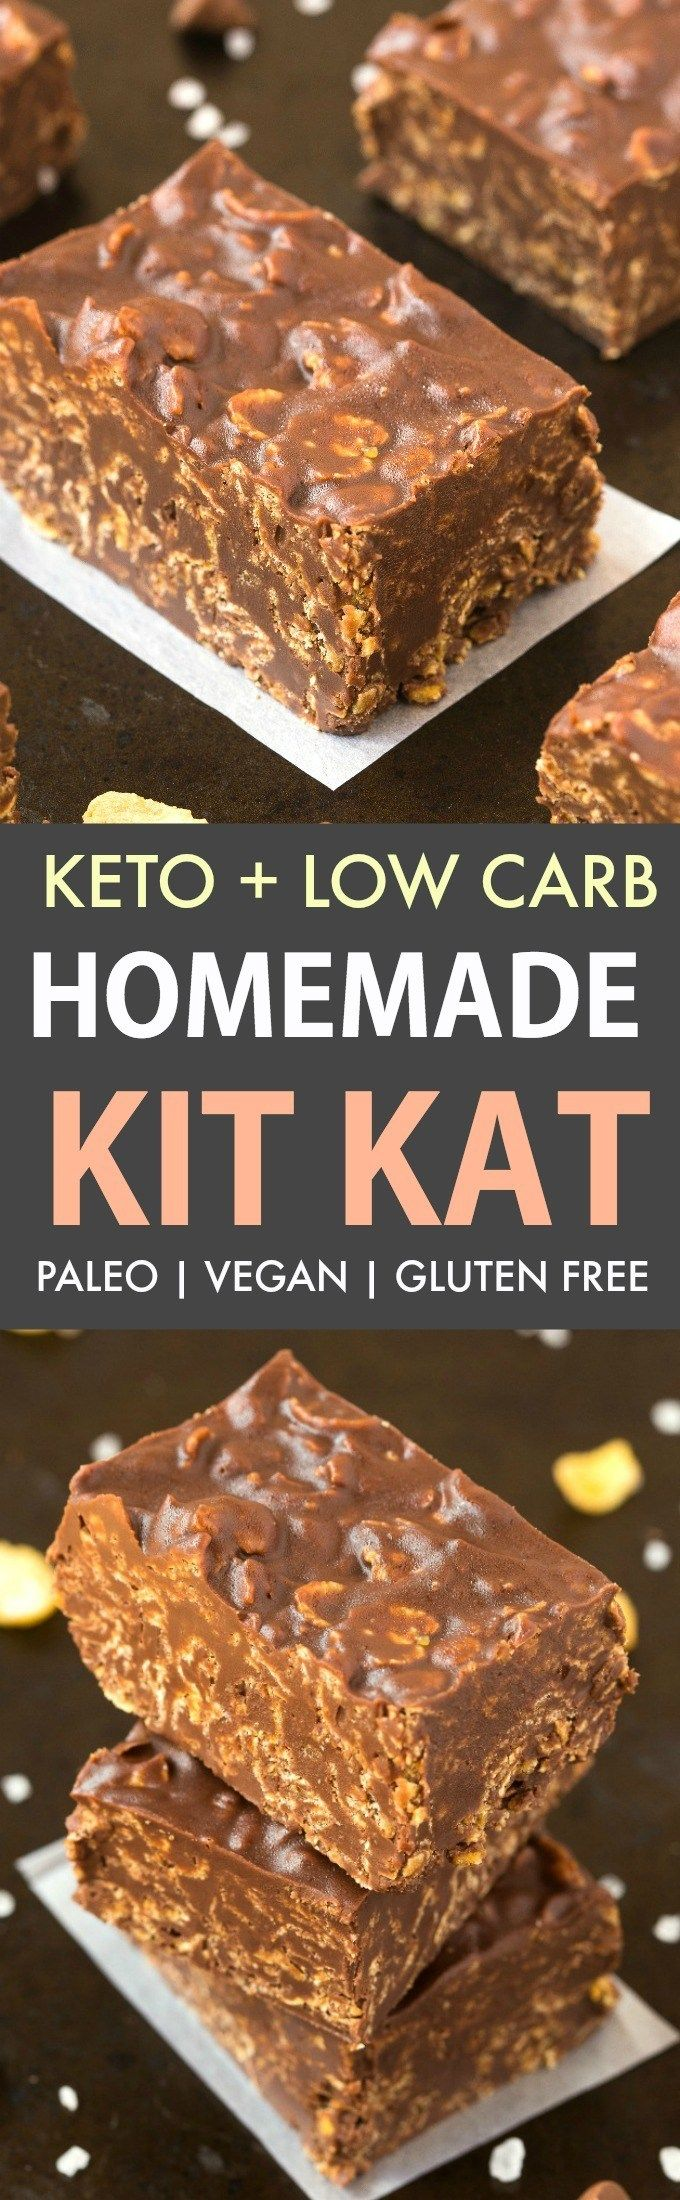 These Homemade Keto Kit Kat Bars are a GAME CHANGE…